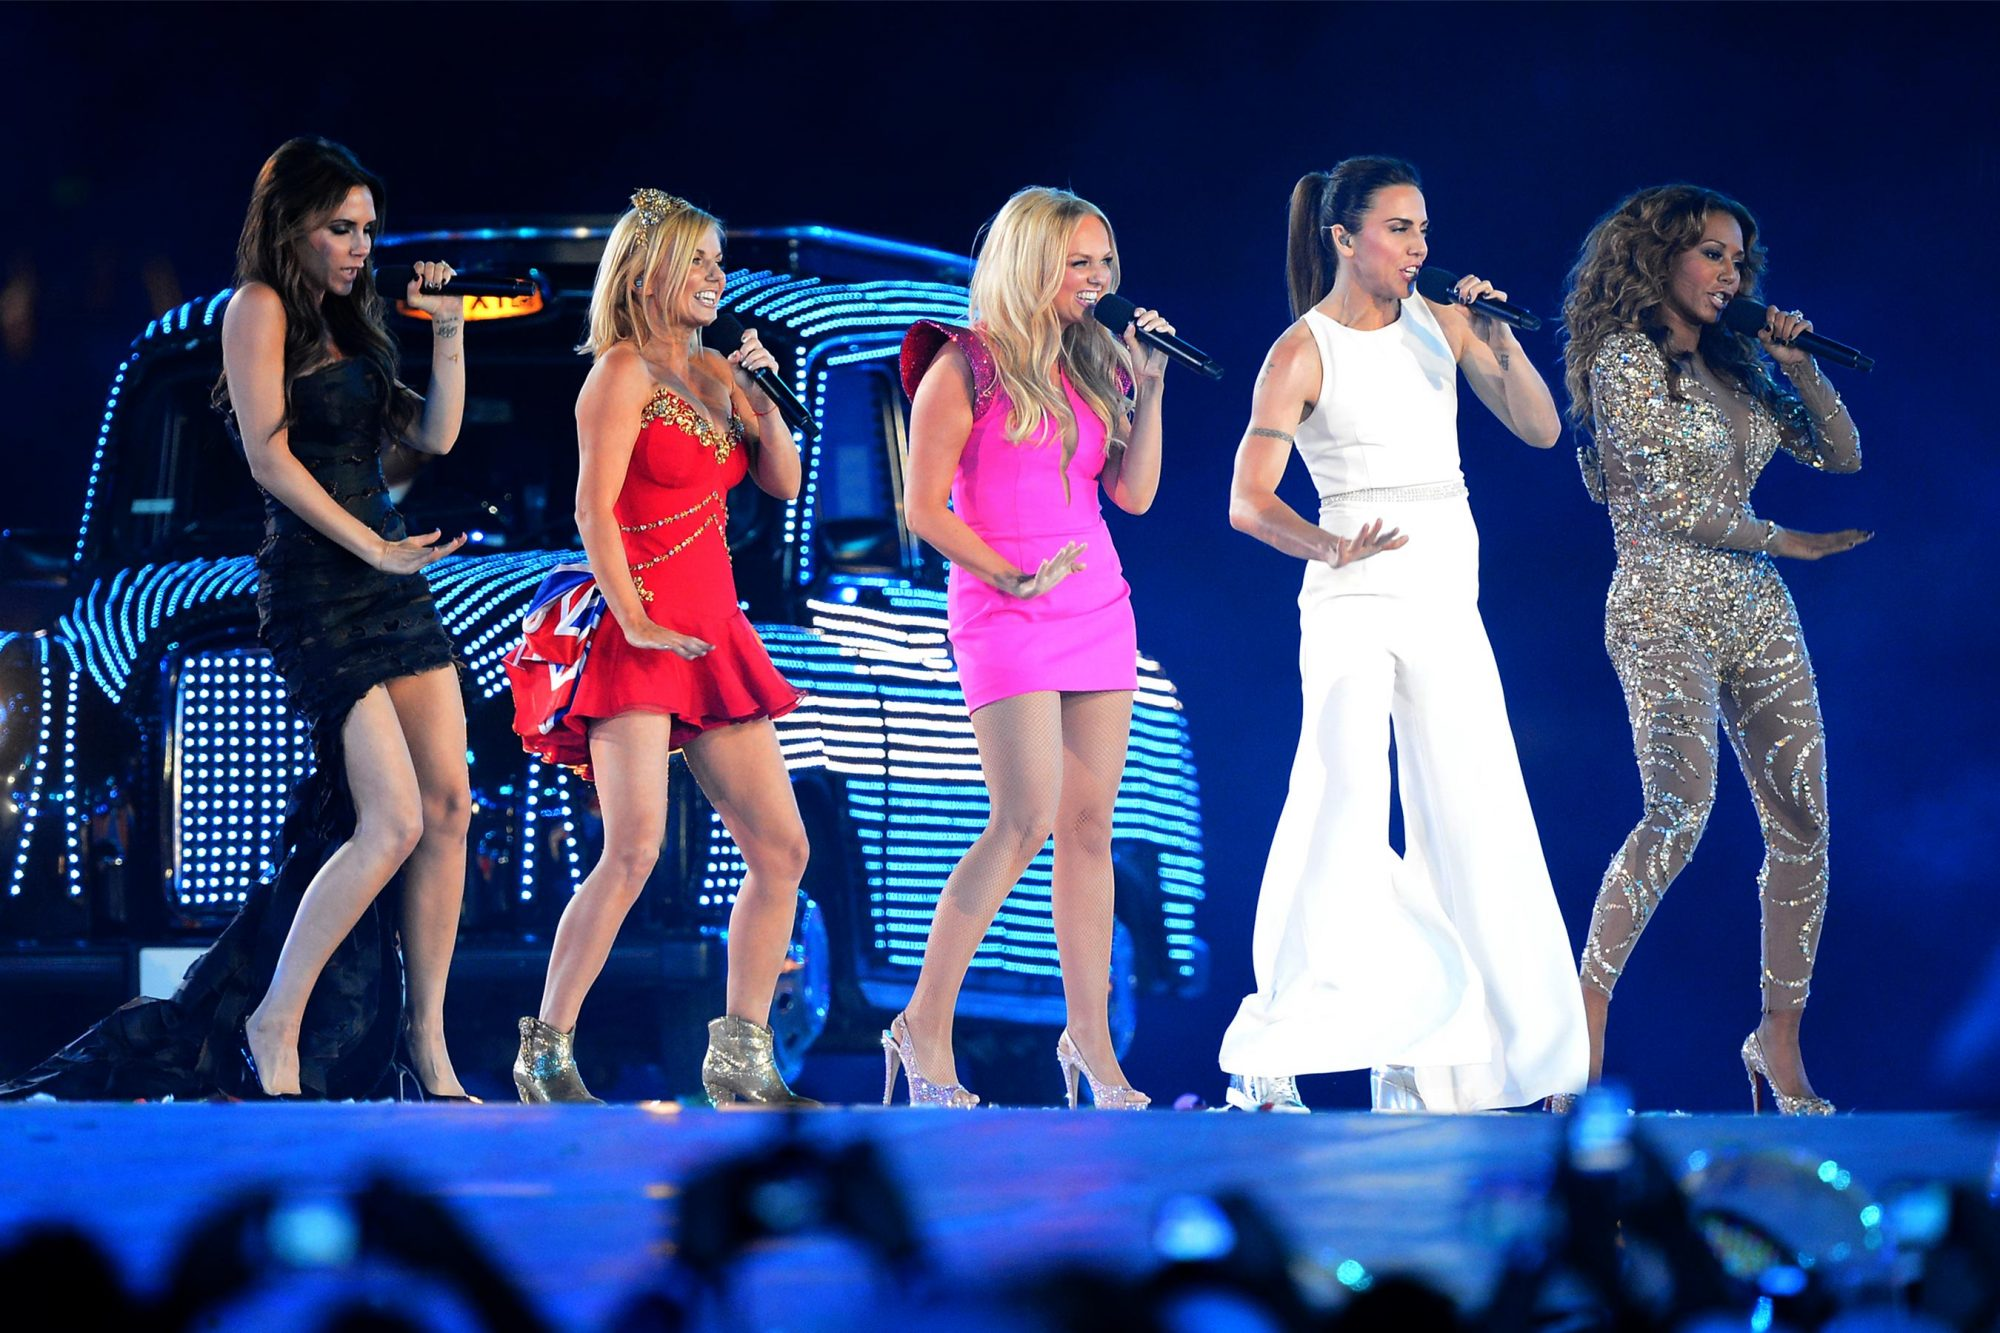 Spice Girls perform at the Olympic stadi